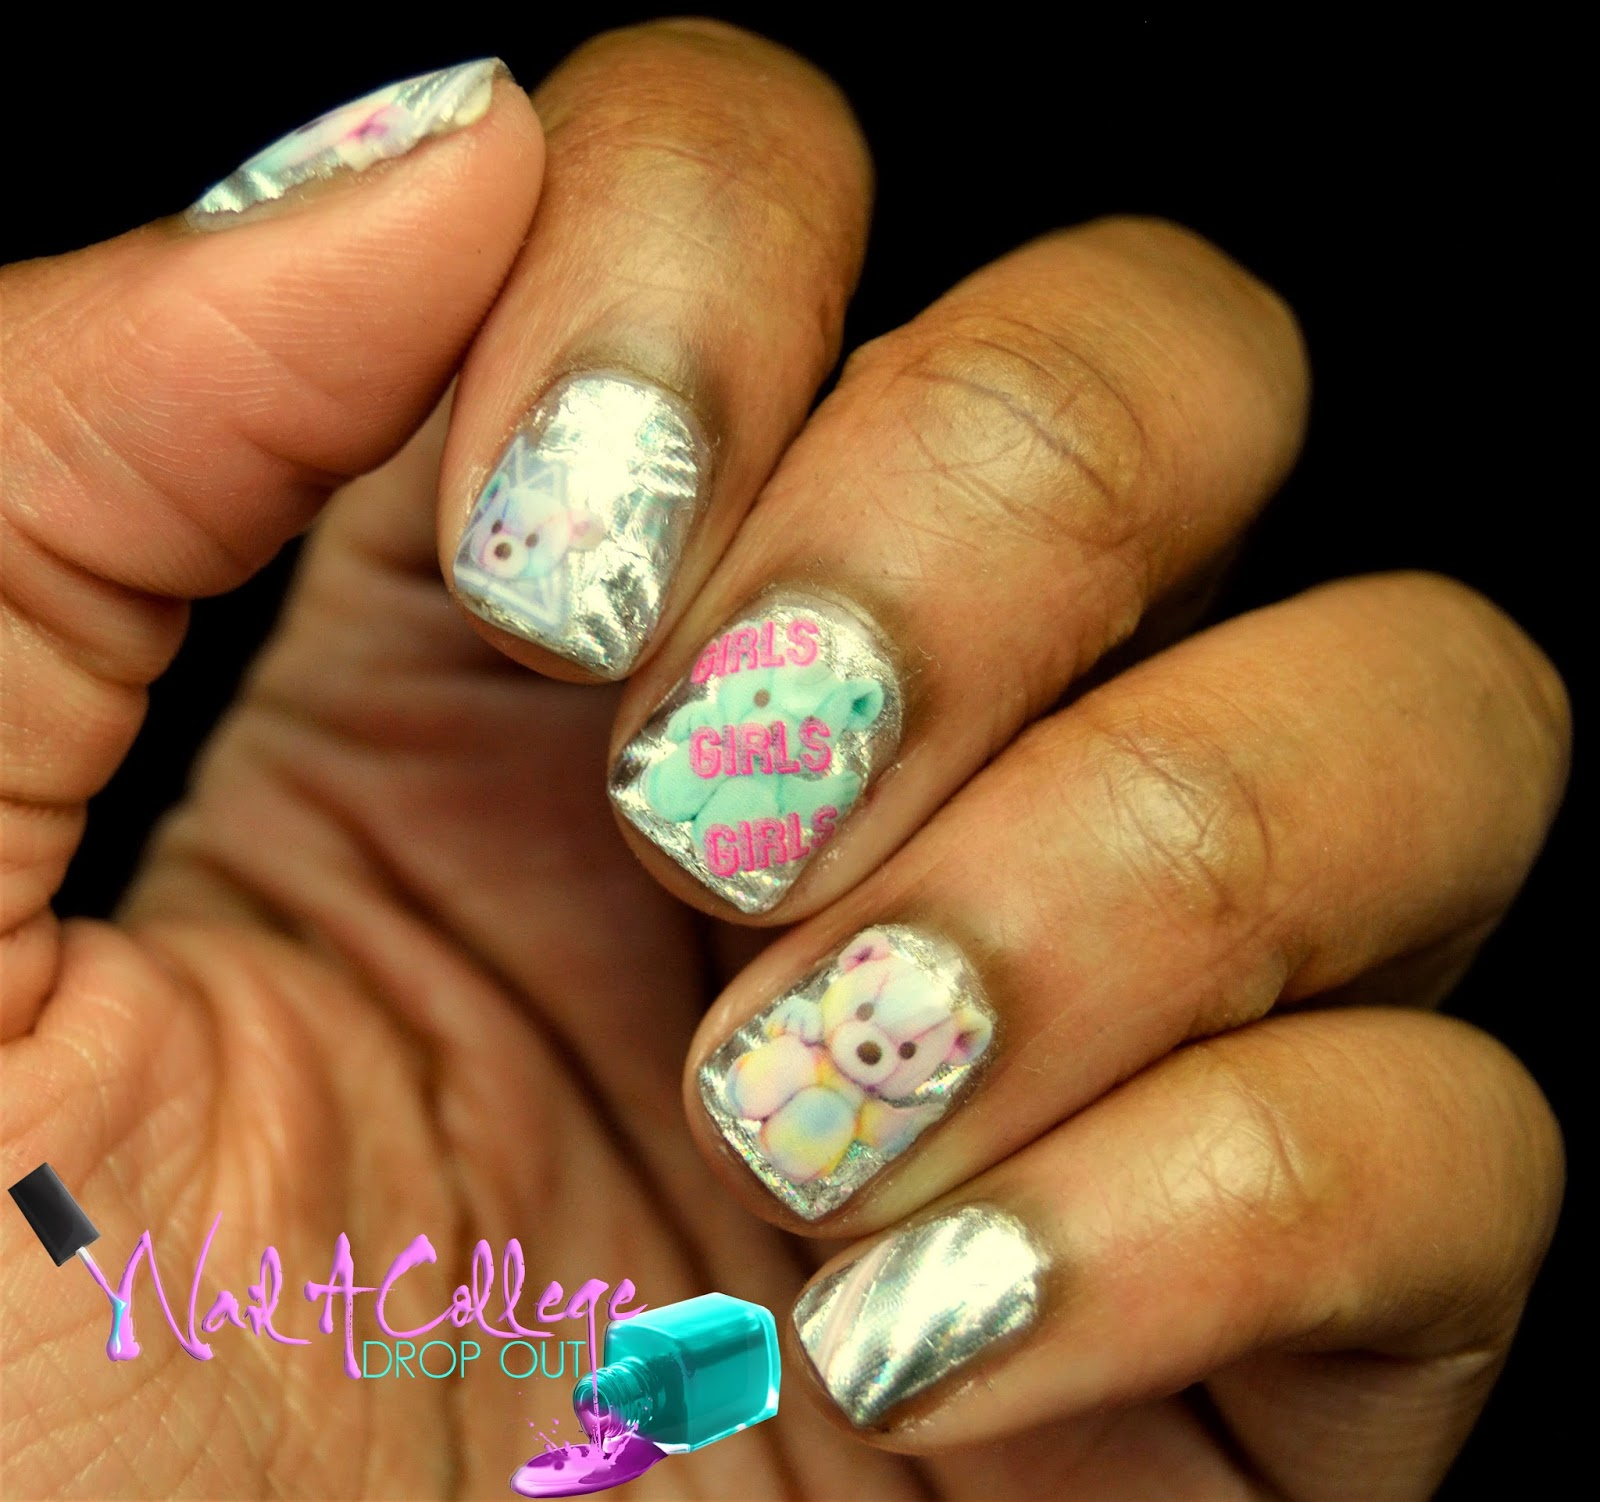 Nail A College Drop Out: Girls Girls Girls x Teddy Bears Nail Art